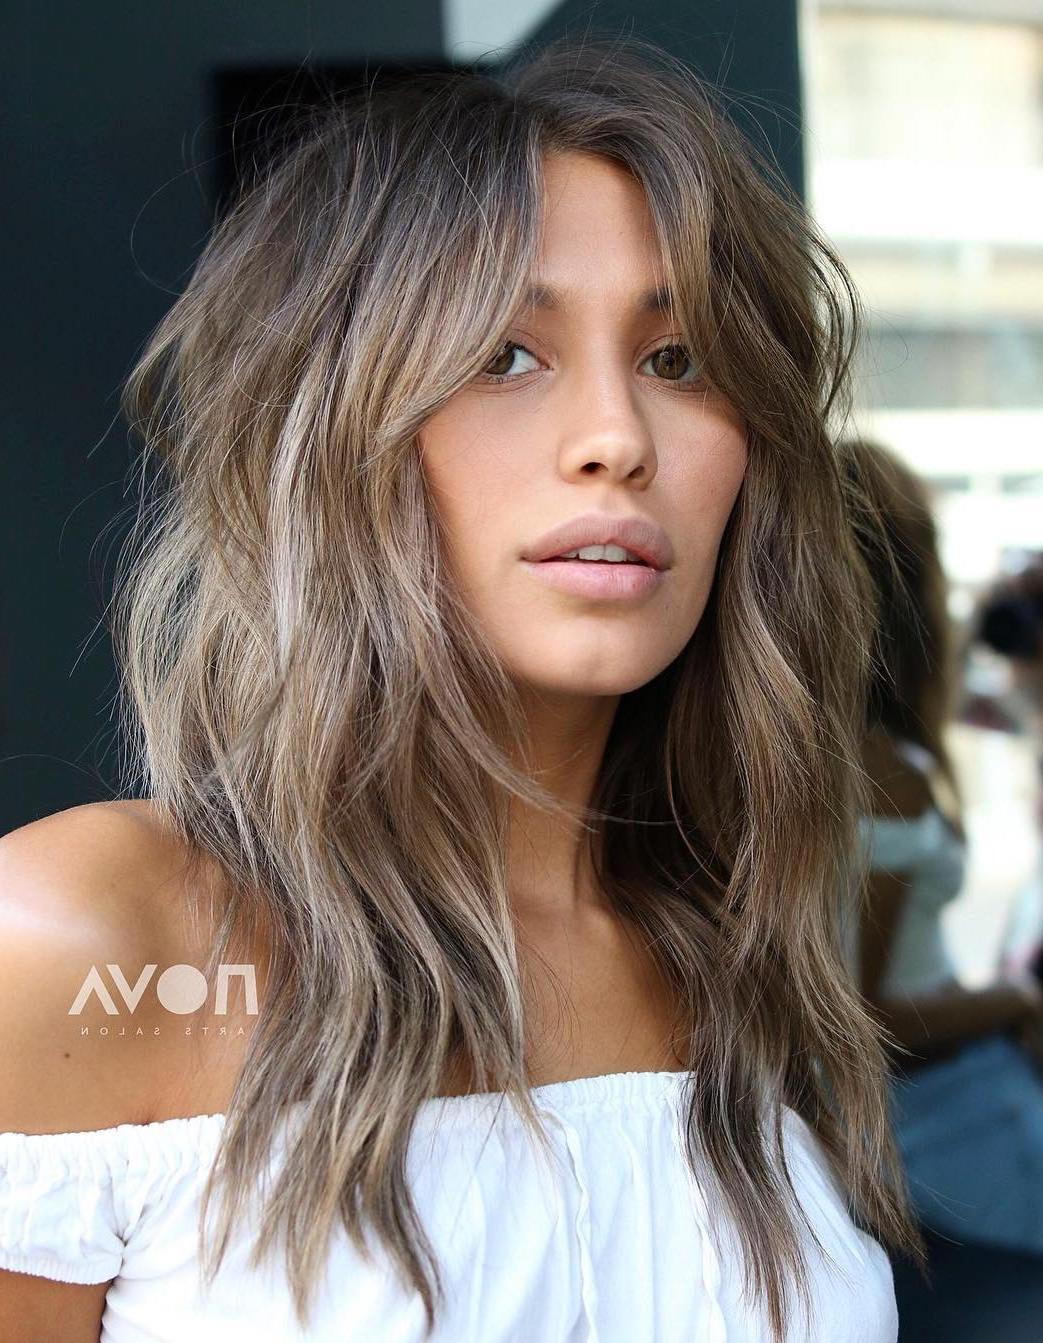 Best And Newest Sharp Shag Haircuts With Razored Layers Throughout 40 Modern Shag Haircuts For Women To Make A Splash (View 10 of 20)